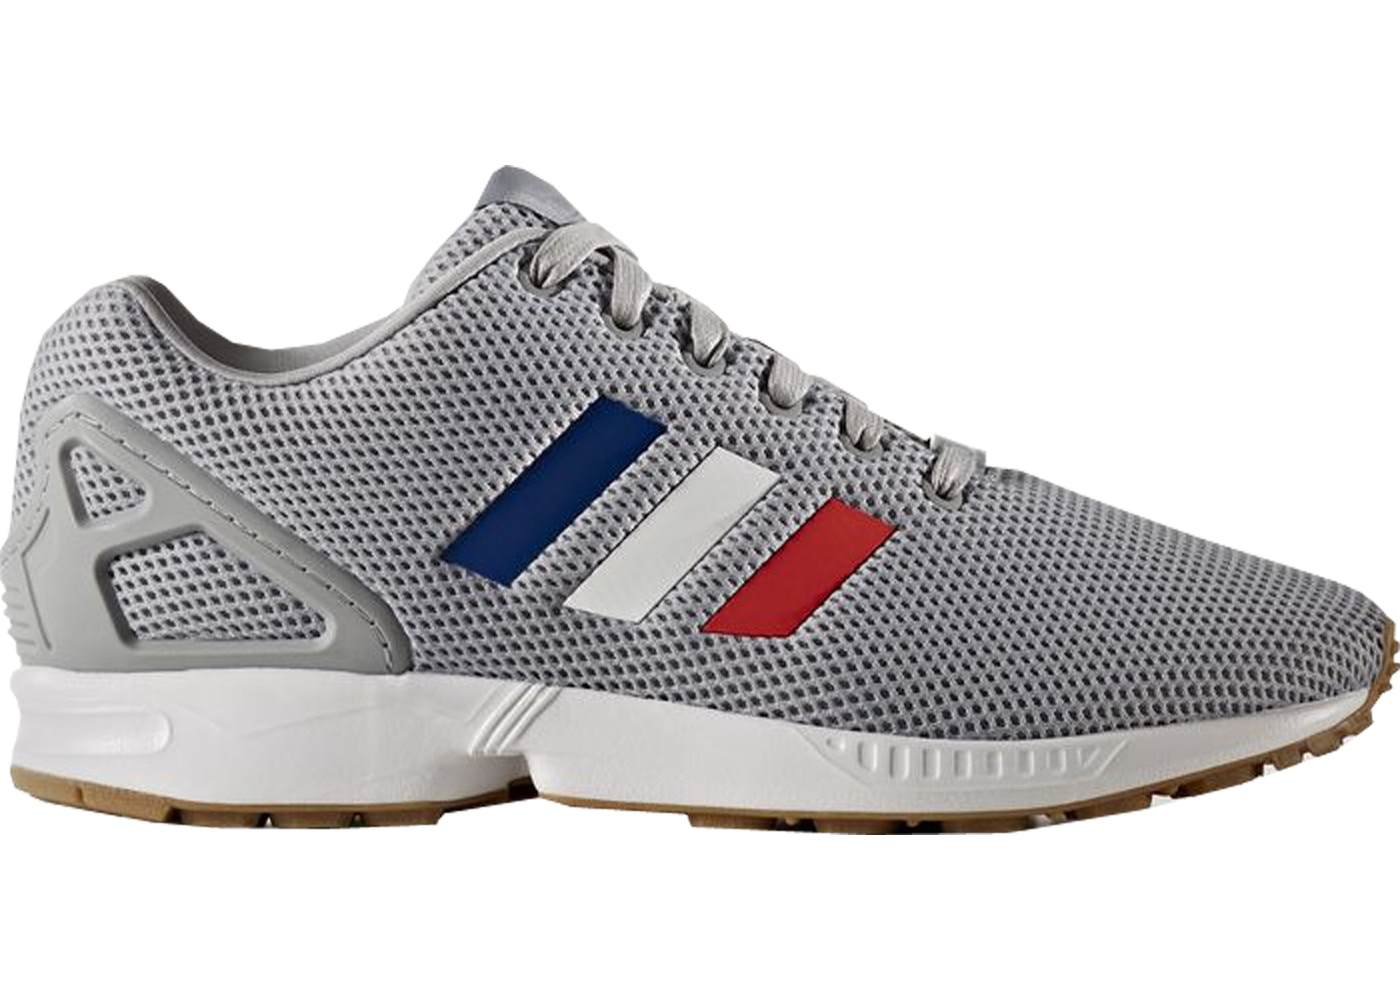 adidas zx flux tri color